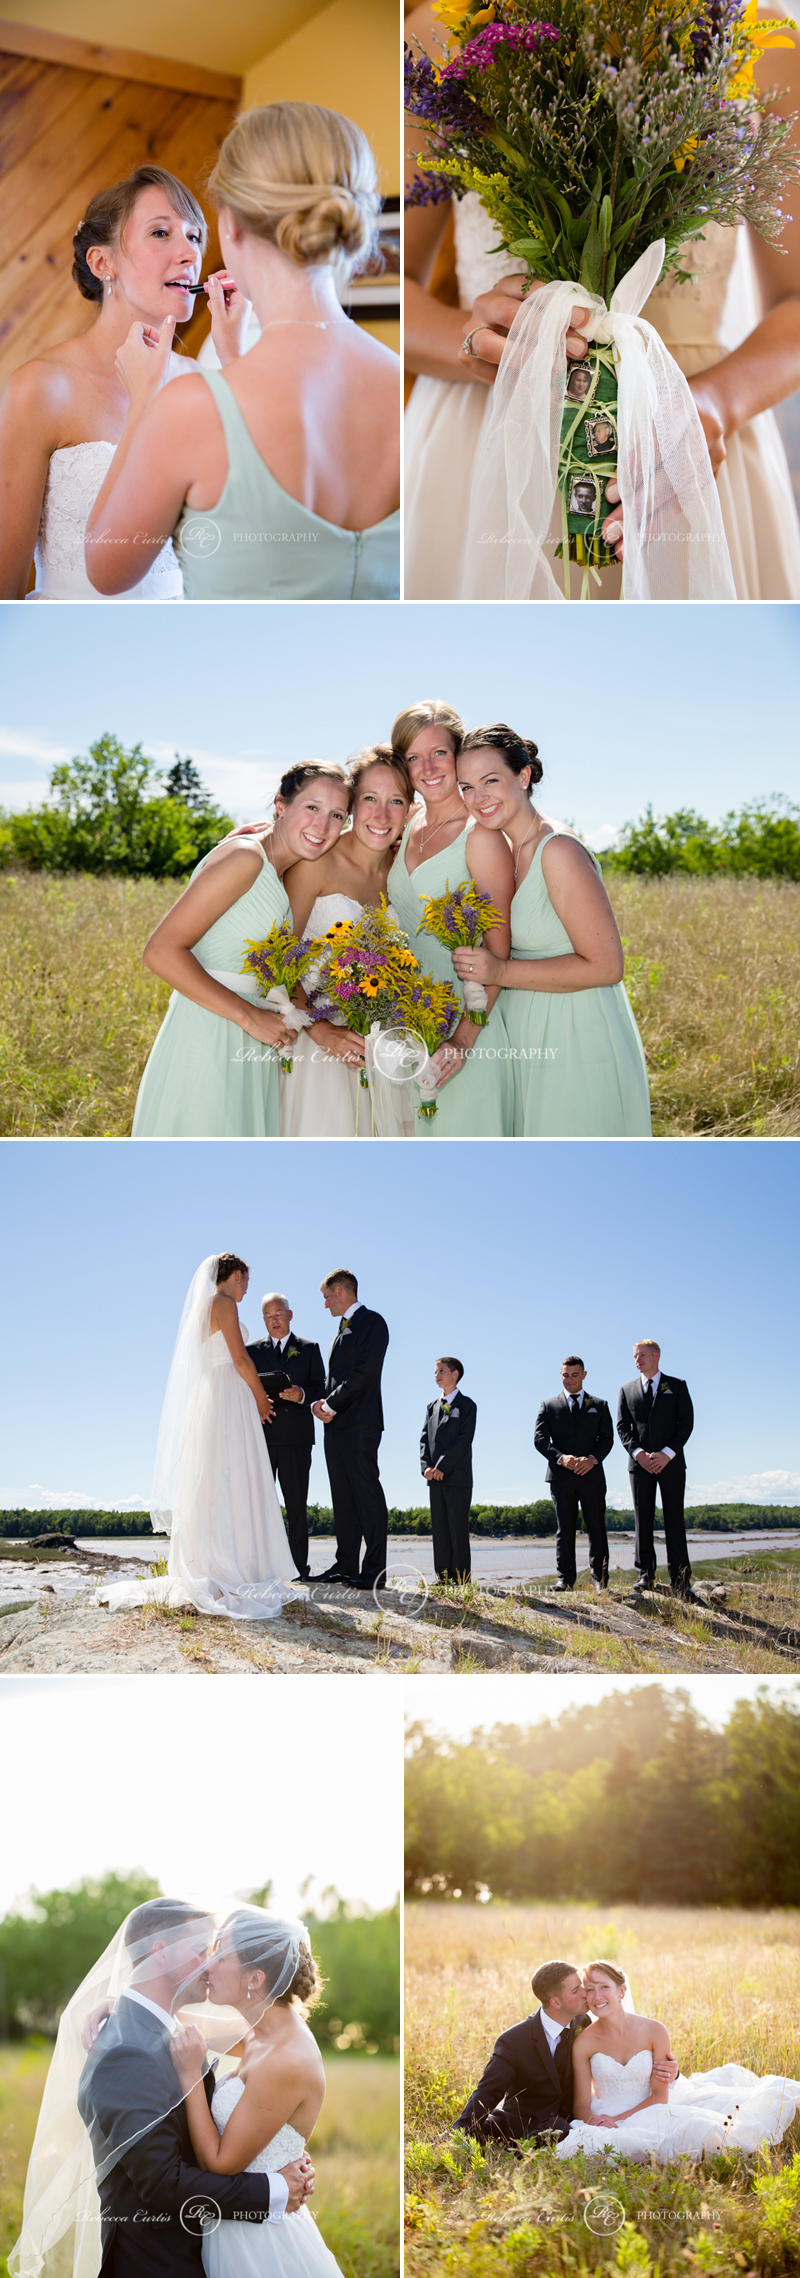 rebecca-curtis-photography-downeast-wedding-2.jpg